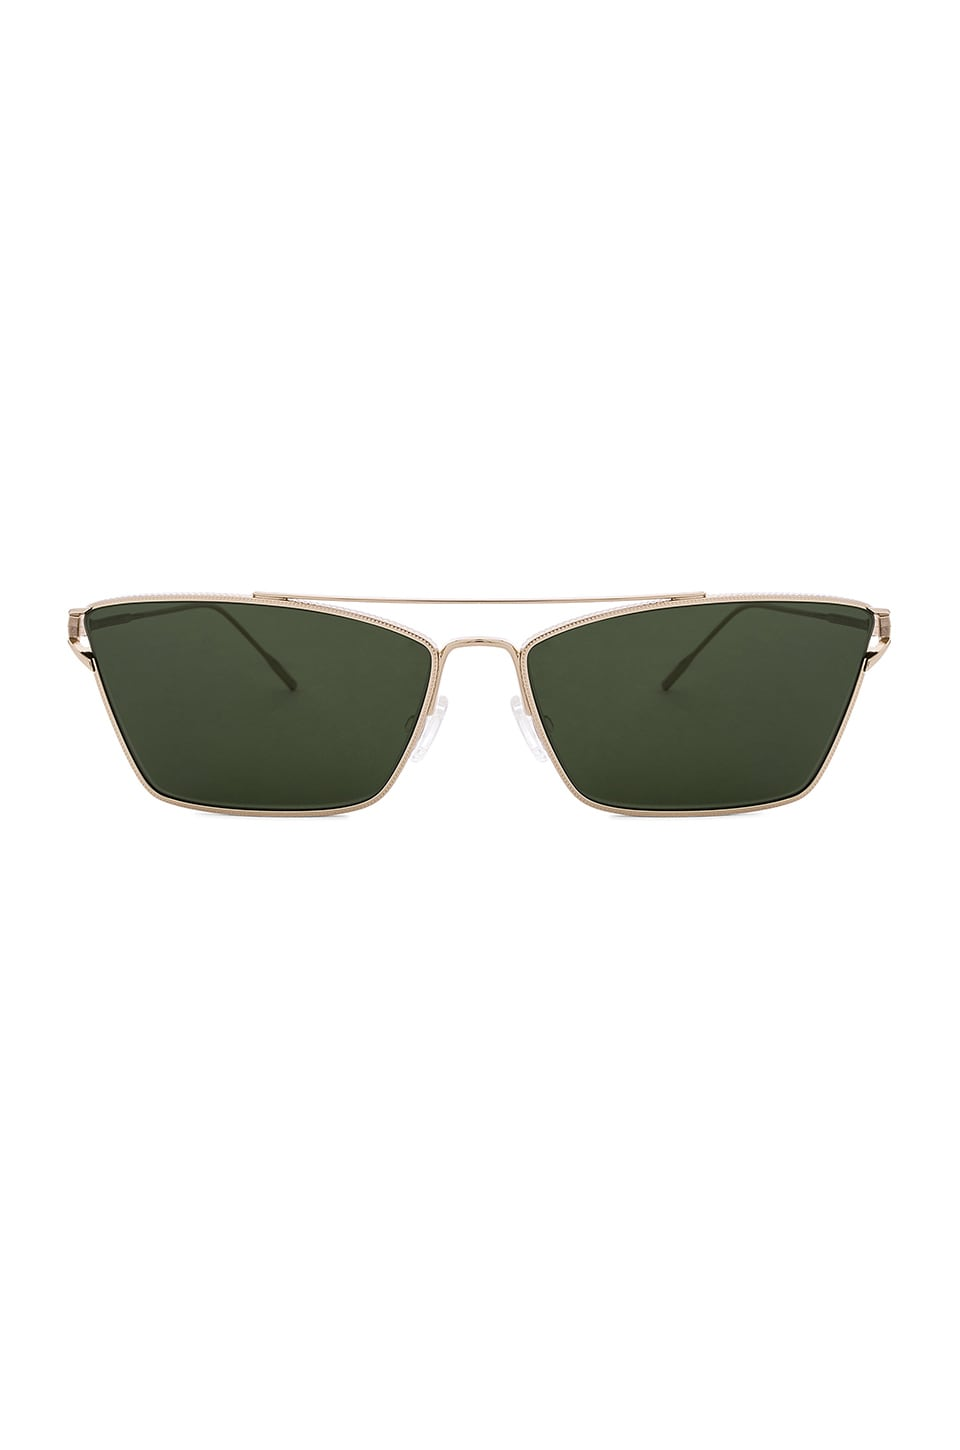 Oliver Peoples Evey in Gold & Green